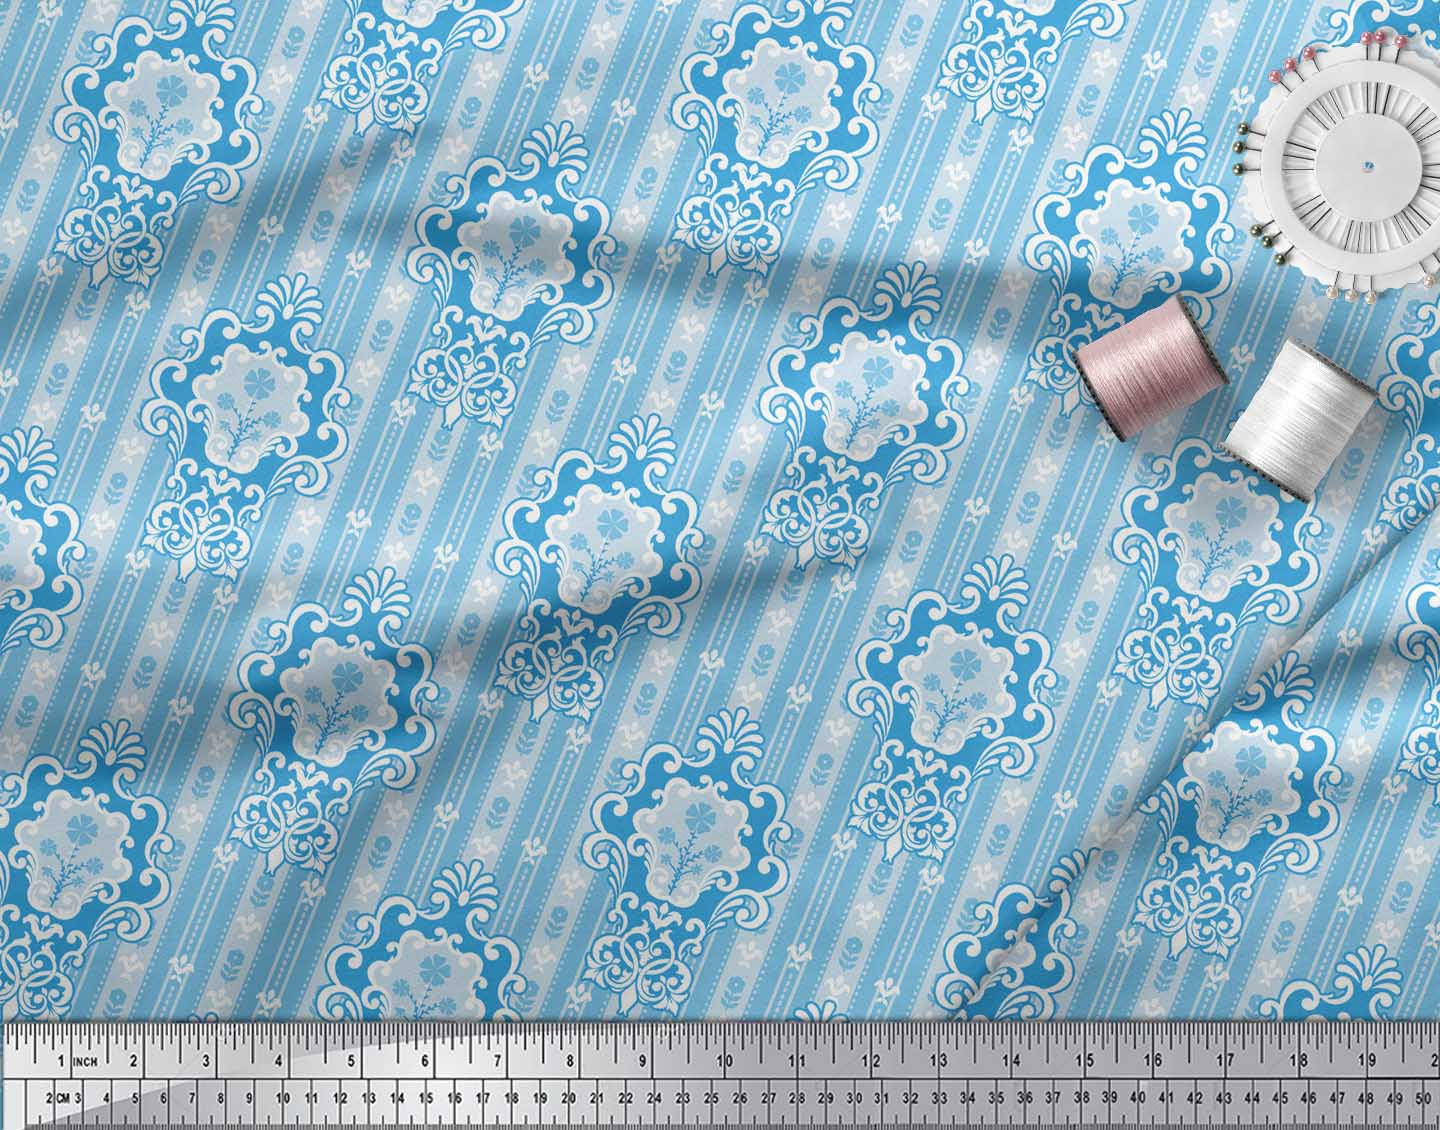 Soimoi-Blue-Cotton-Poplin-Fabric-Abstract-Damask-Print-Fabric-by-x5t thumbnail 4